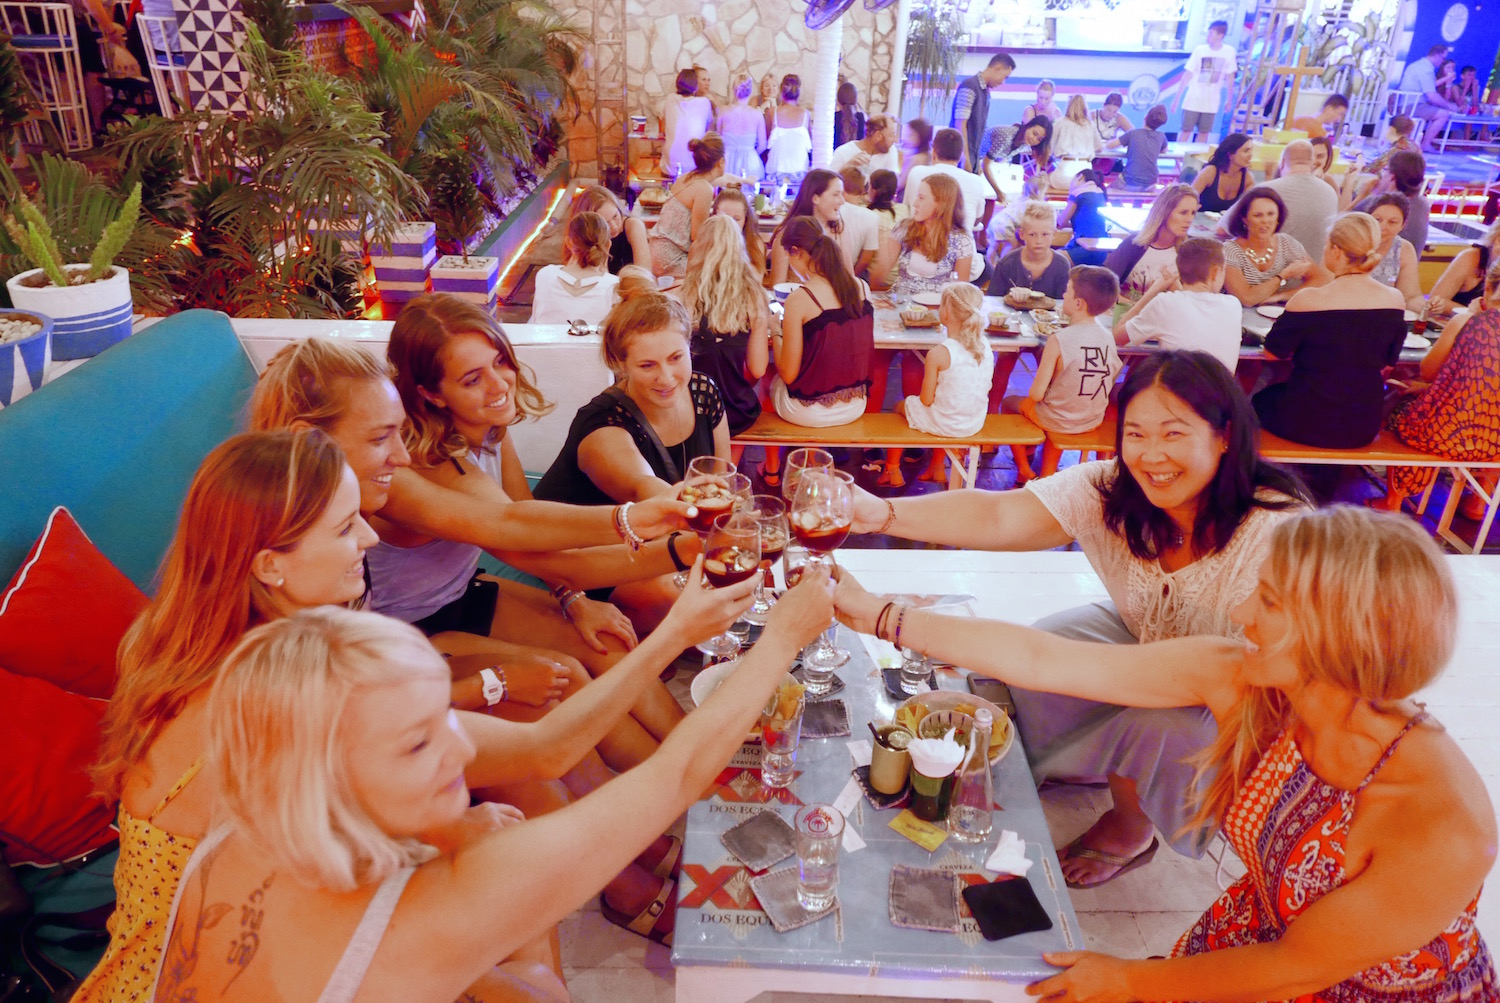 motel-mexicola-we-are-travel-girls-bali-event-39